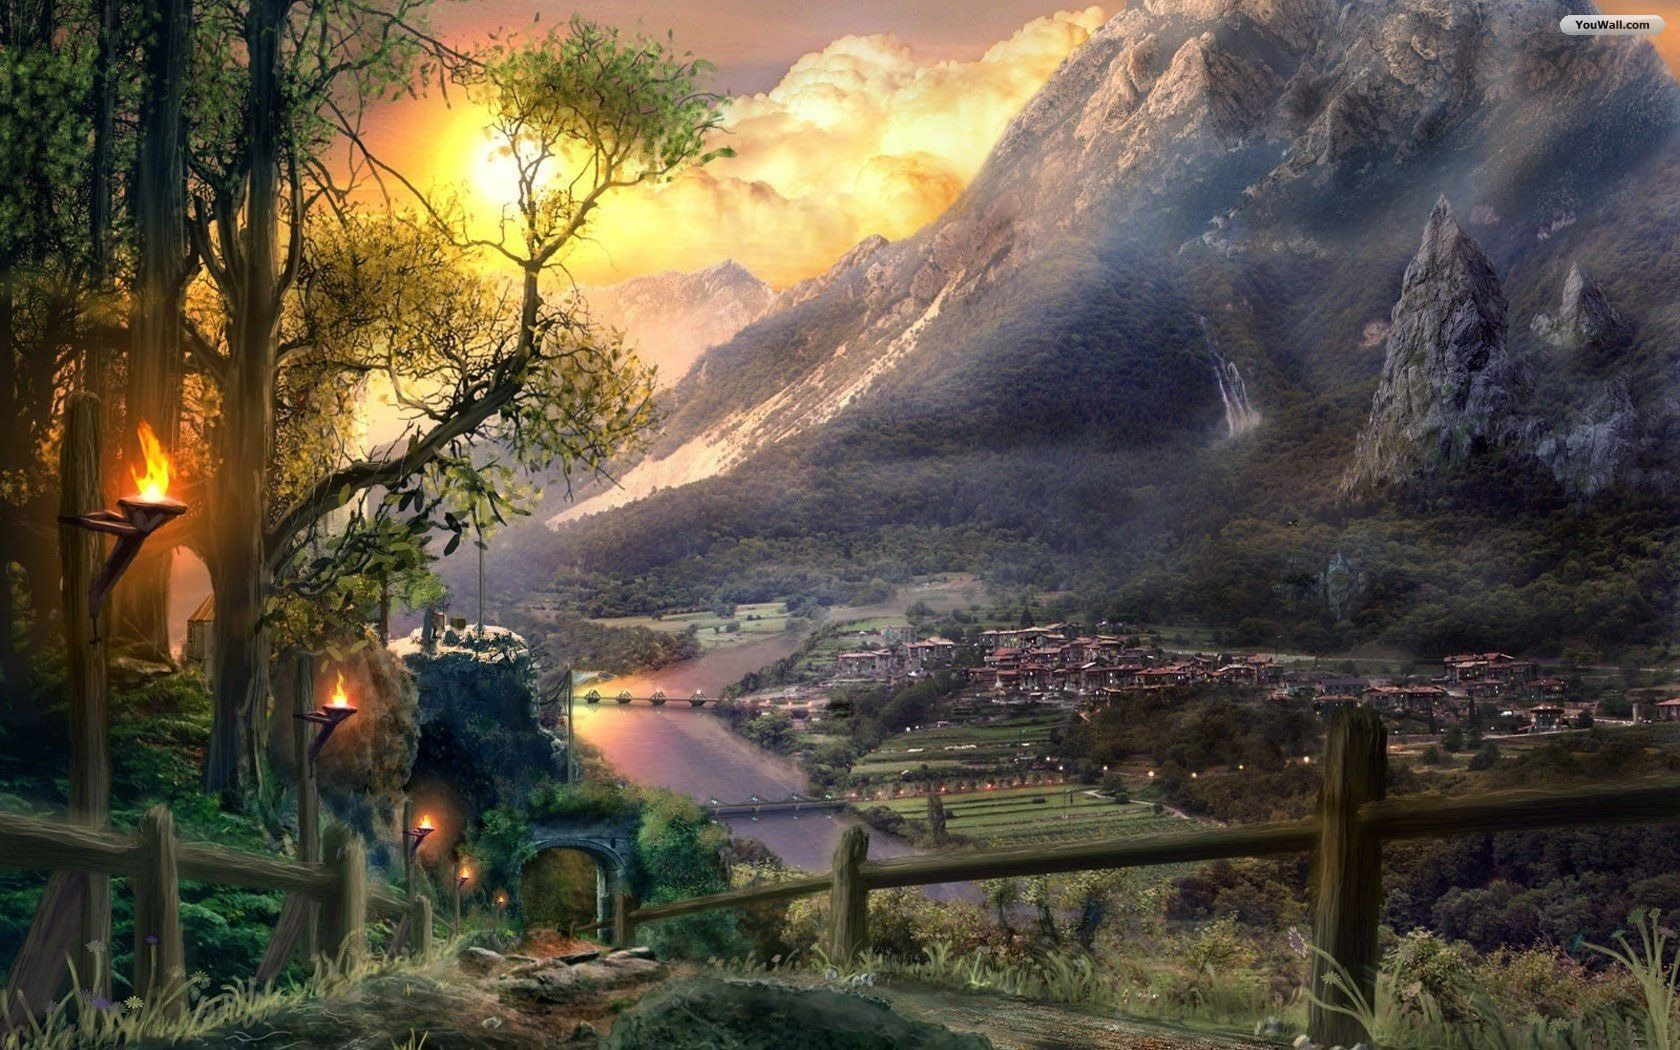 youwall - fantasy world wallpaper - wallpaper,wallpapers,free